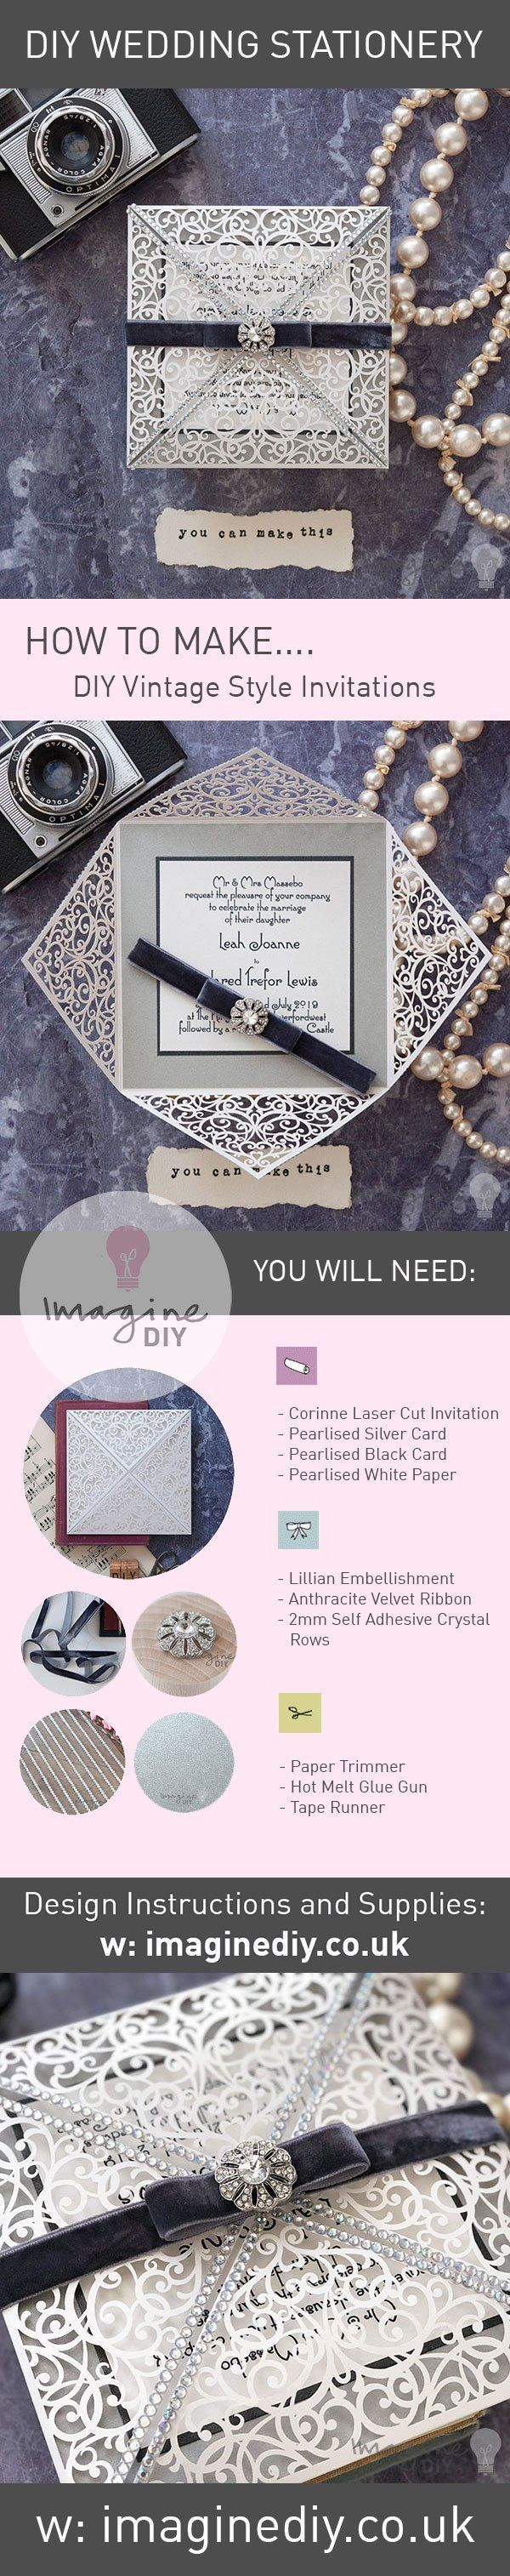 paper cut wedding invitations uk%0A Ideas to make vintage style wedding invitations in silver and white  DIY wedding  stationery supplies and instructions available from www imaginediy co uk